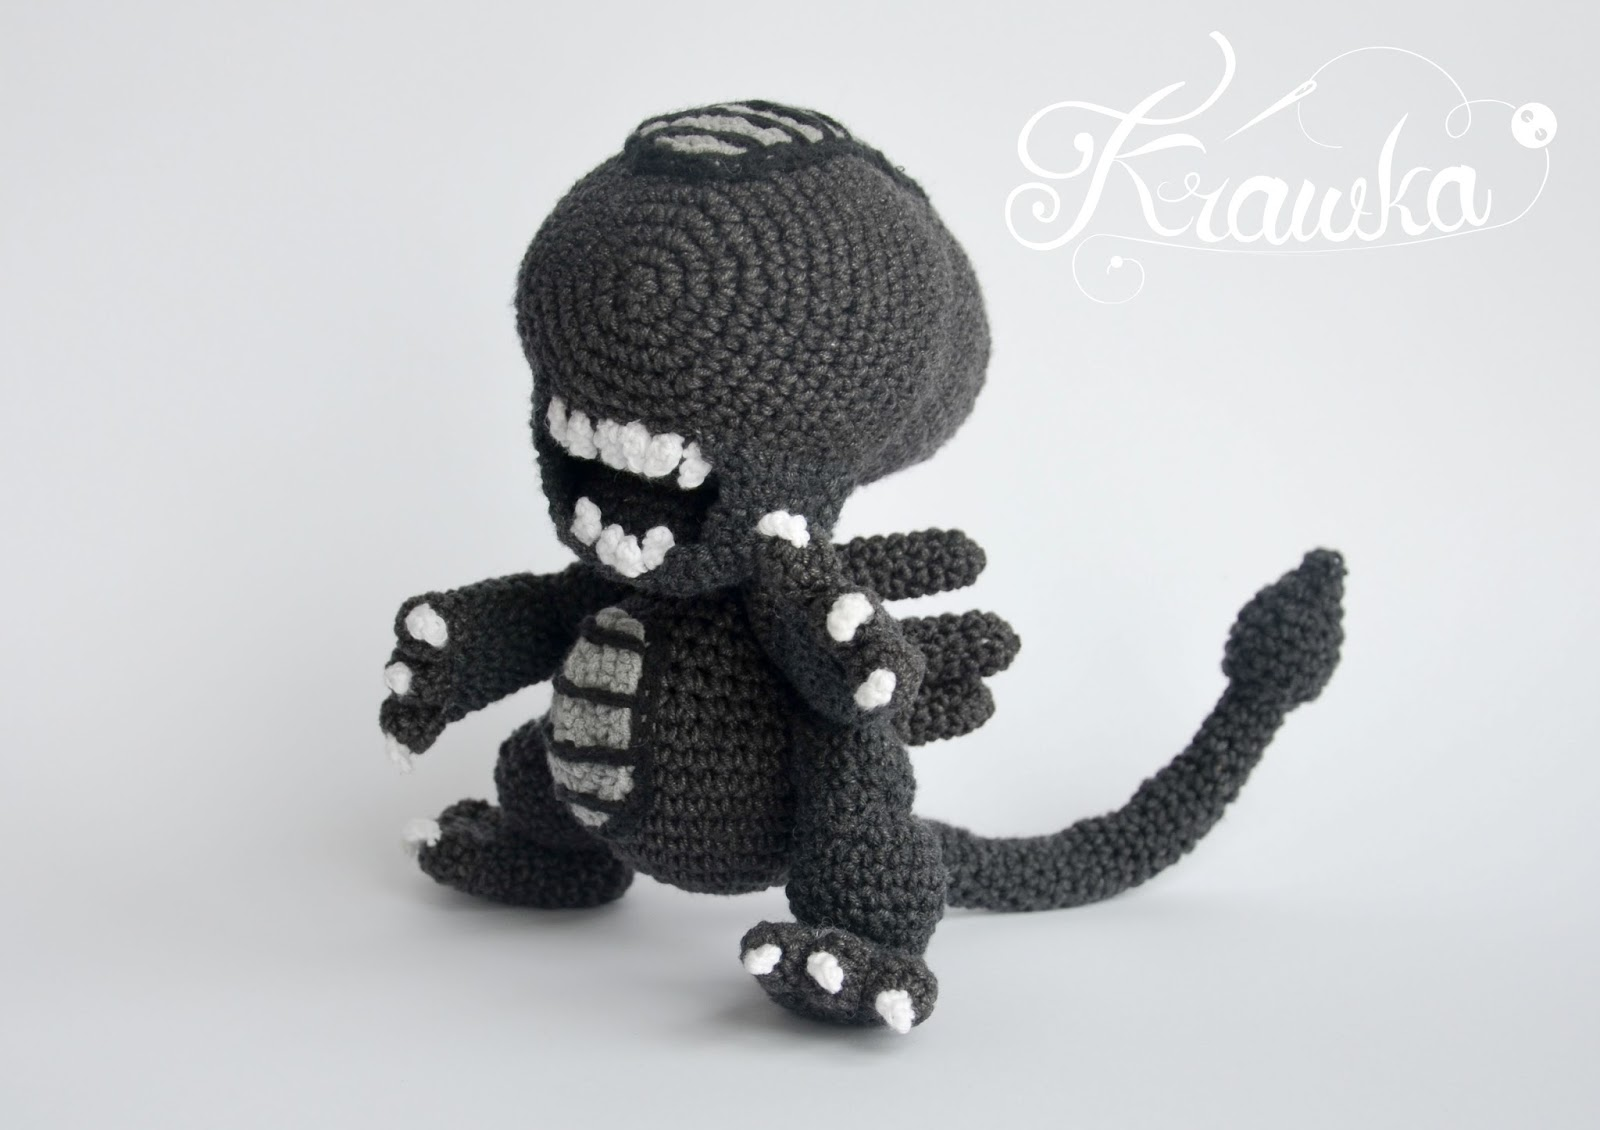 Crochet Xenomorph : Alien xenomorph crochet pattern by Krawka - best geek crochet pattern ...